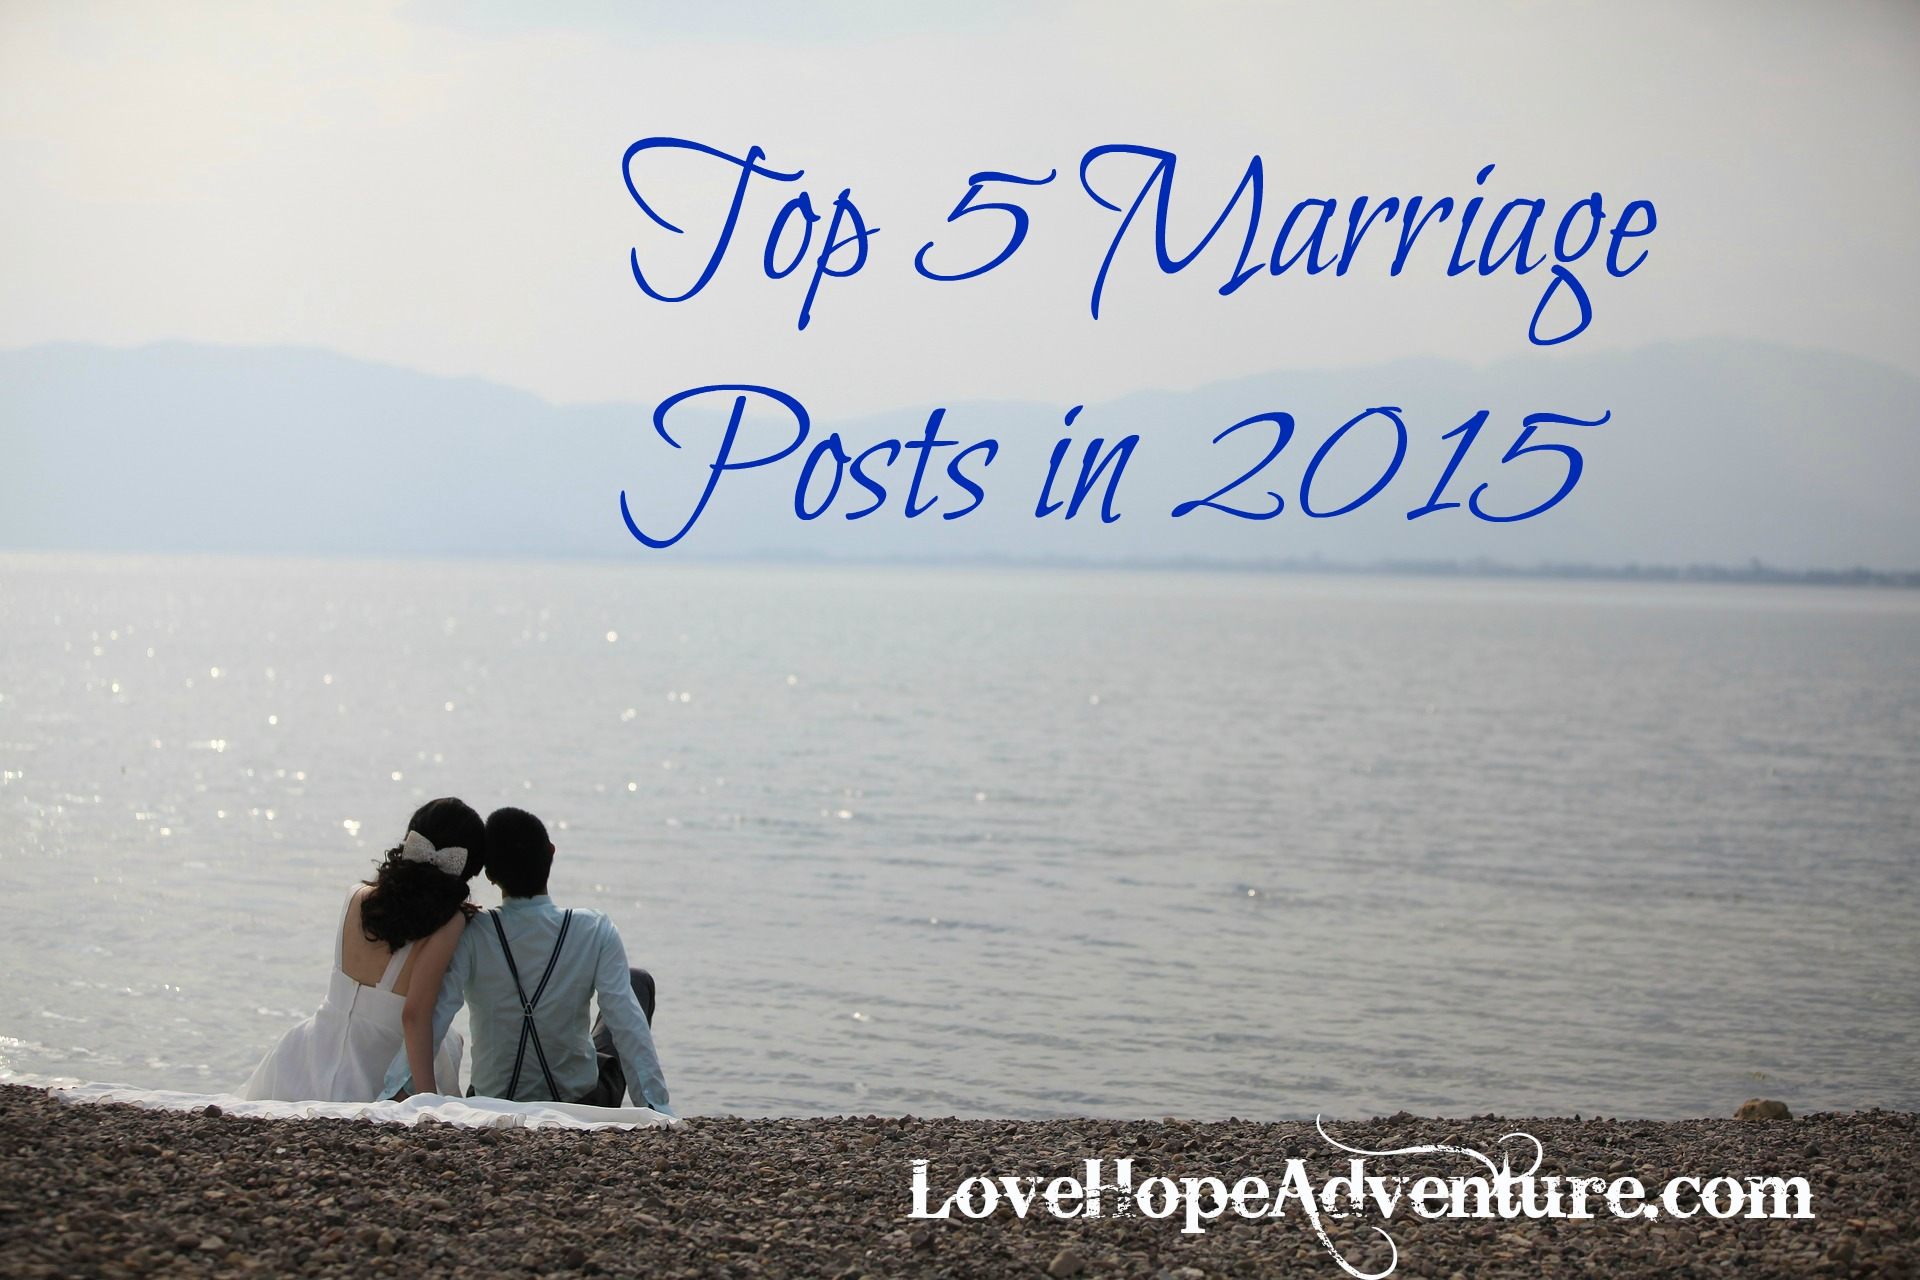 Top 5 Marriage Posts in 2015